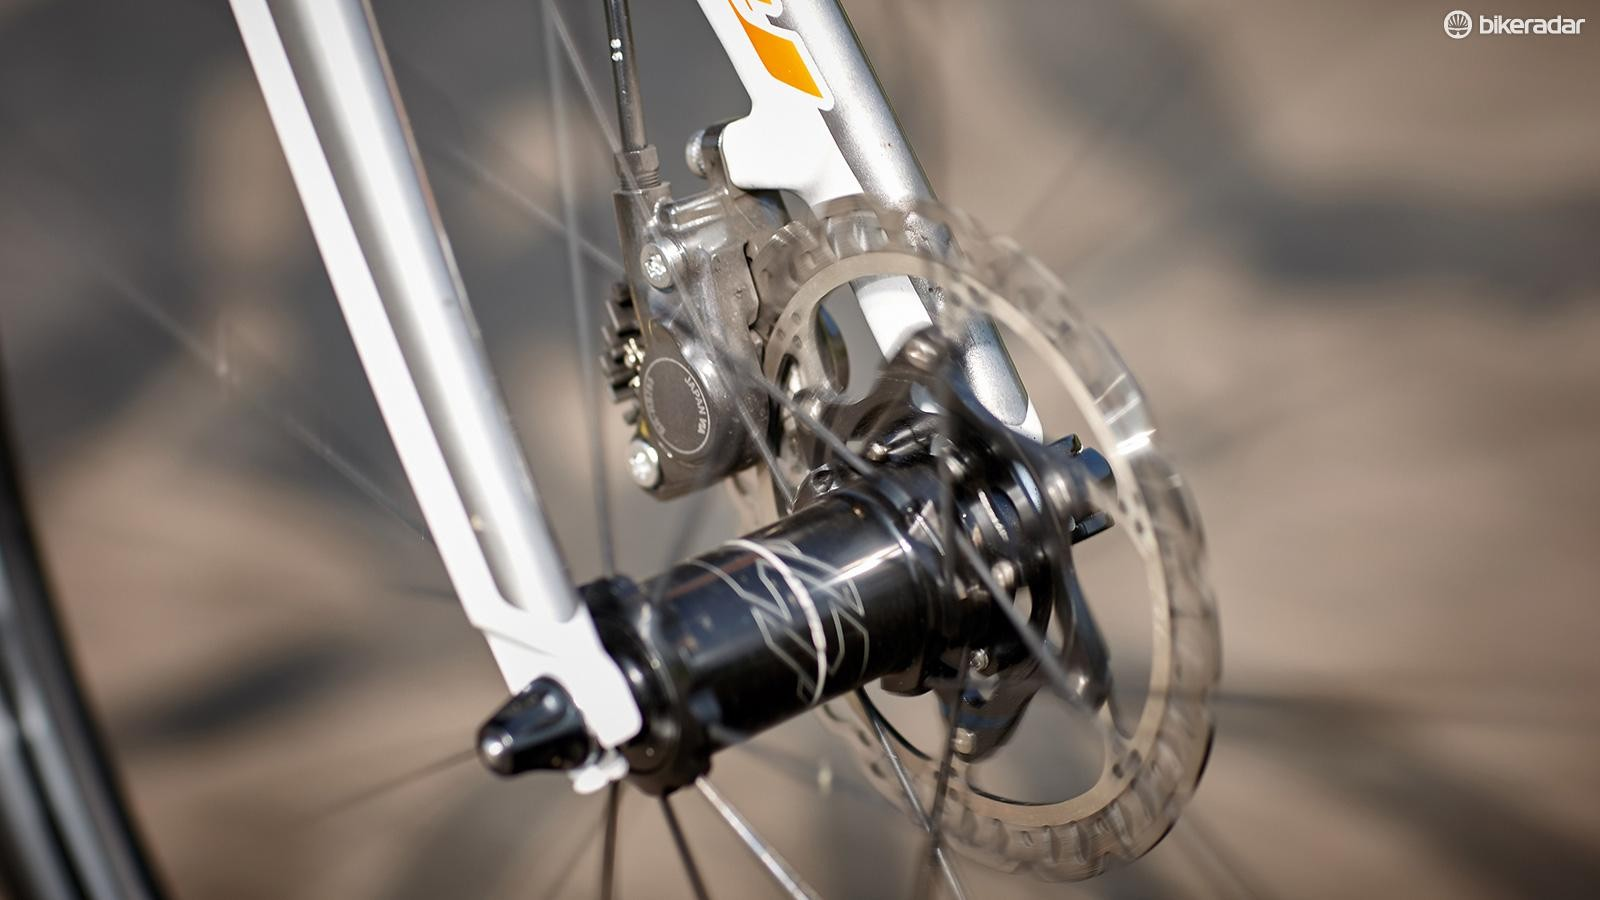 Every inch the modern endurance machine, from the compact frame and dropped seatstays to the hydraulic brakes